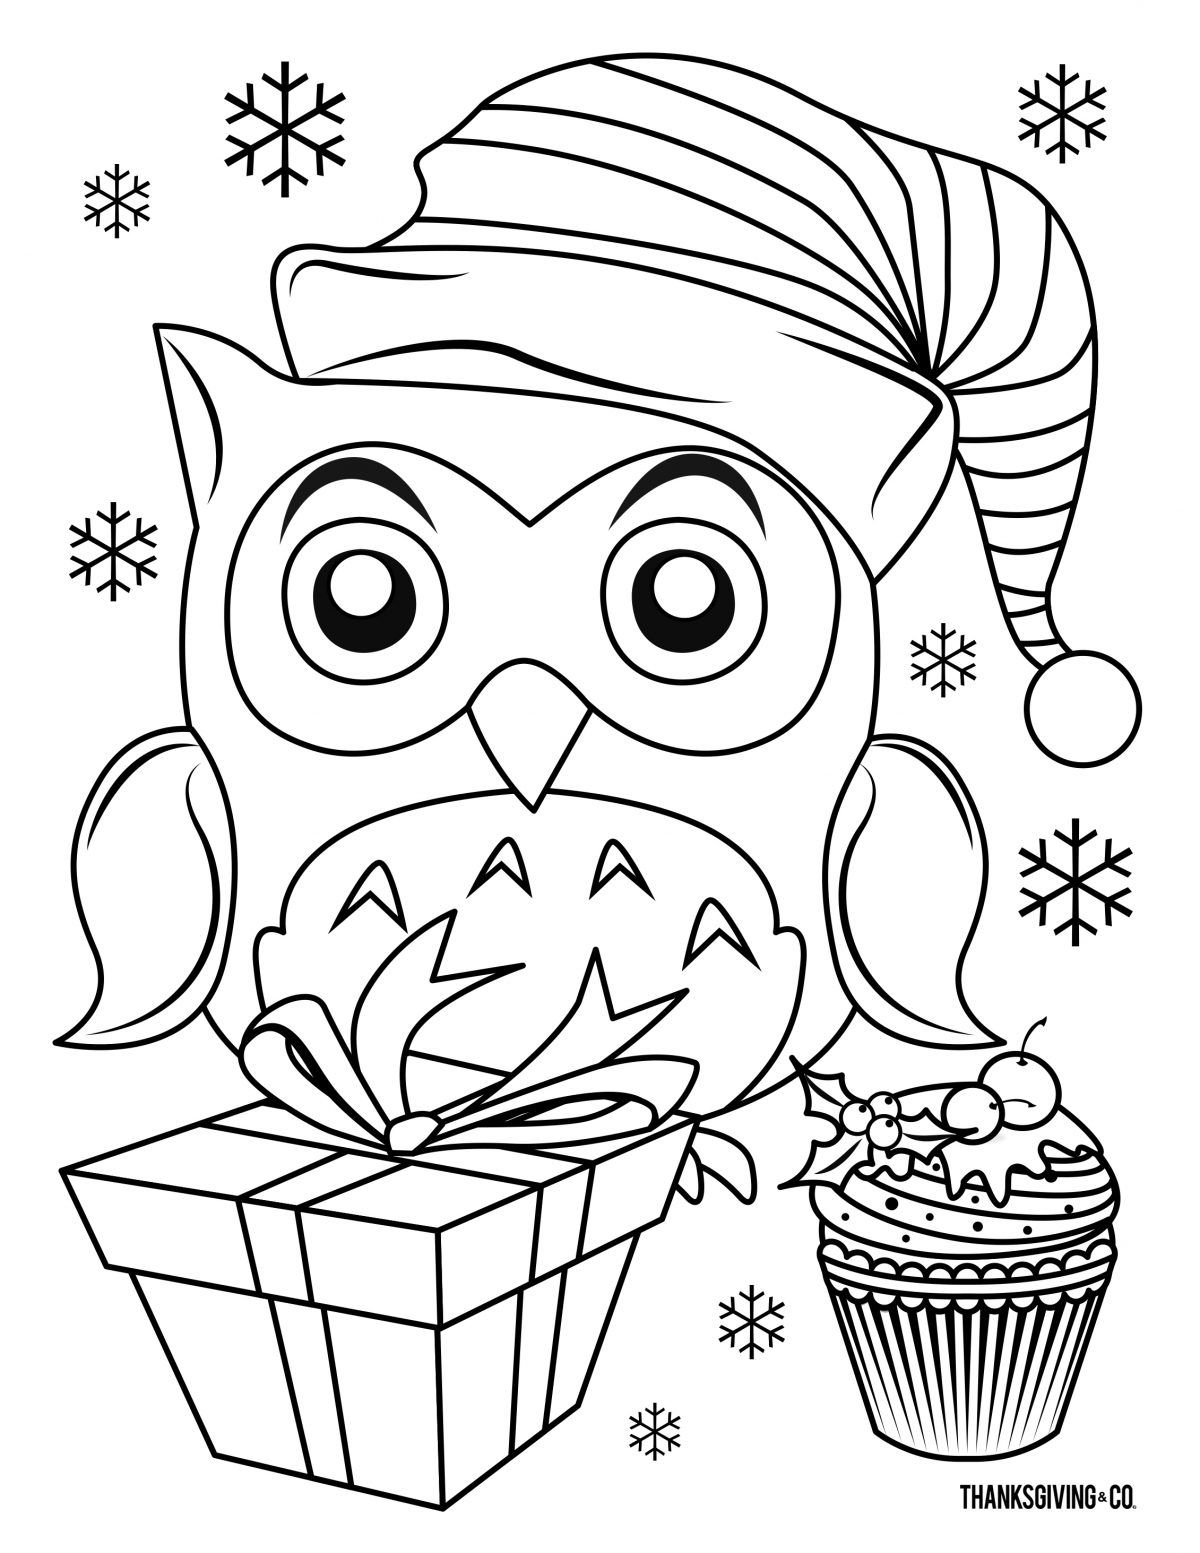 5 Christmas Coloring Pages Your Kids Will Love Coruja Para